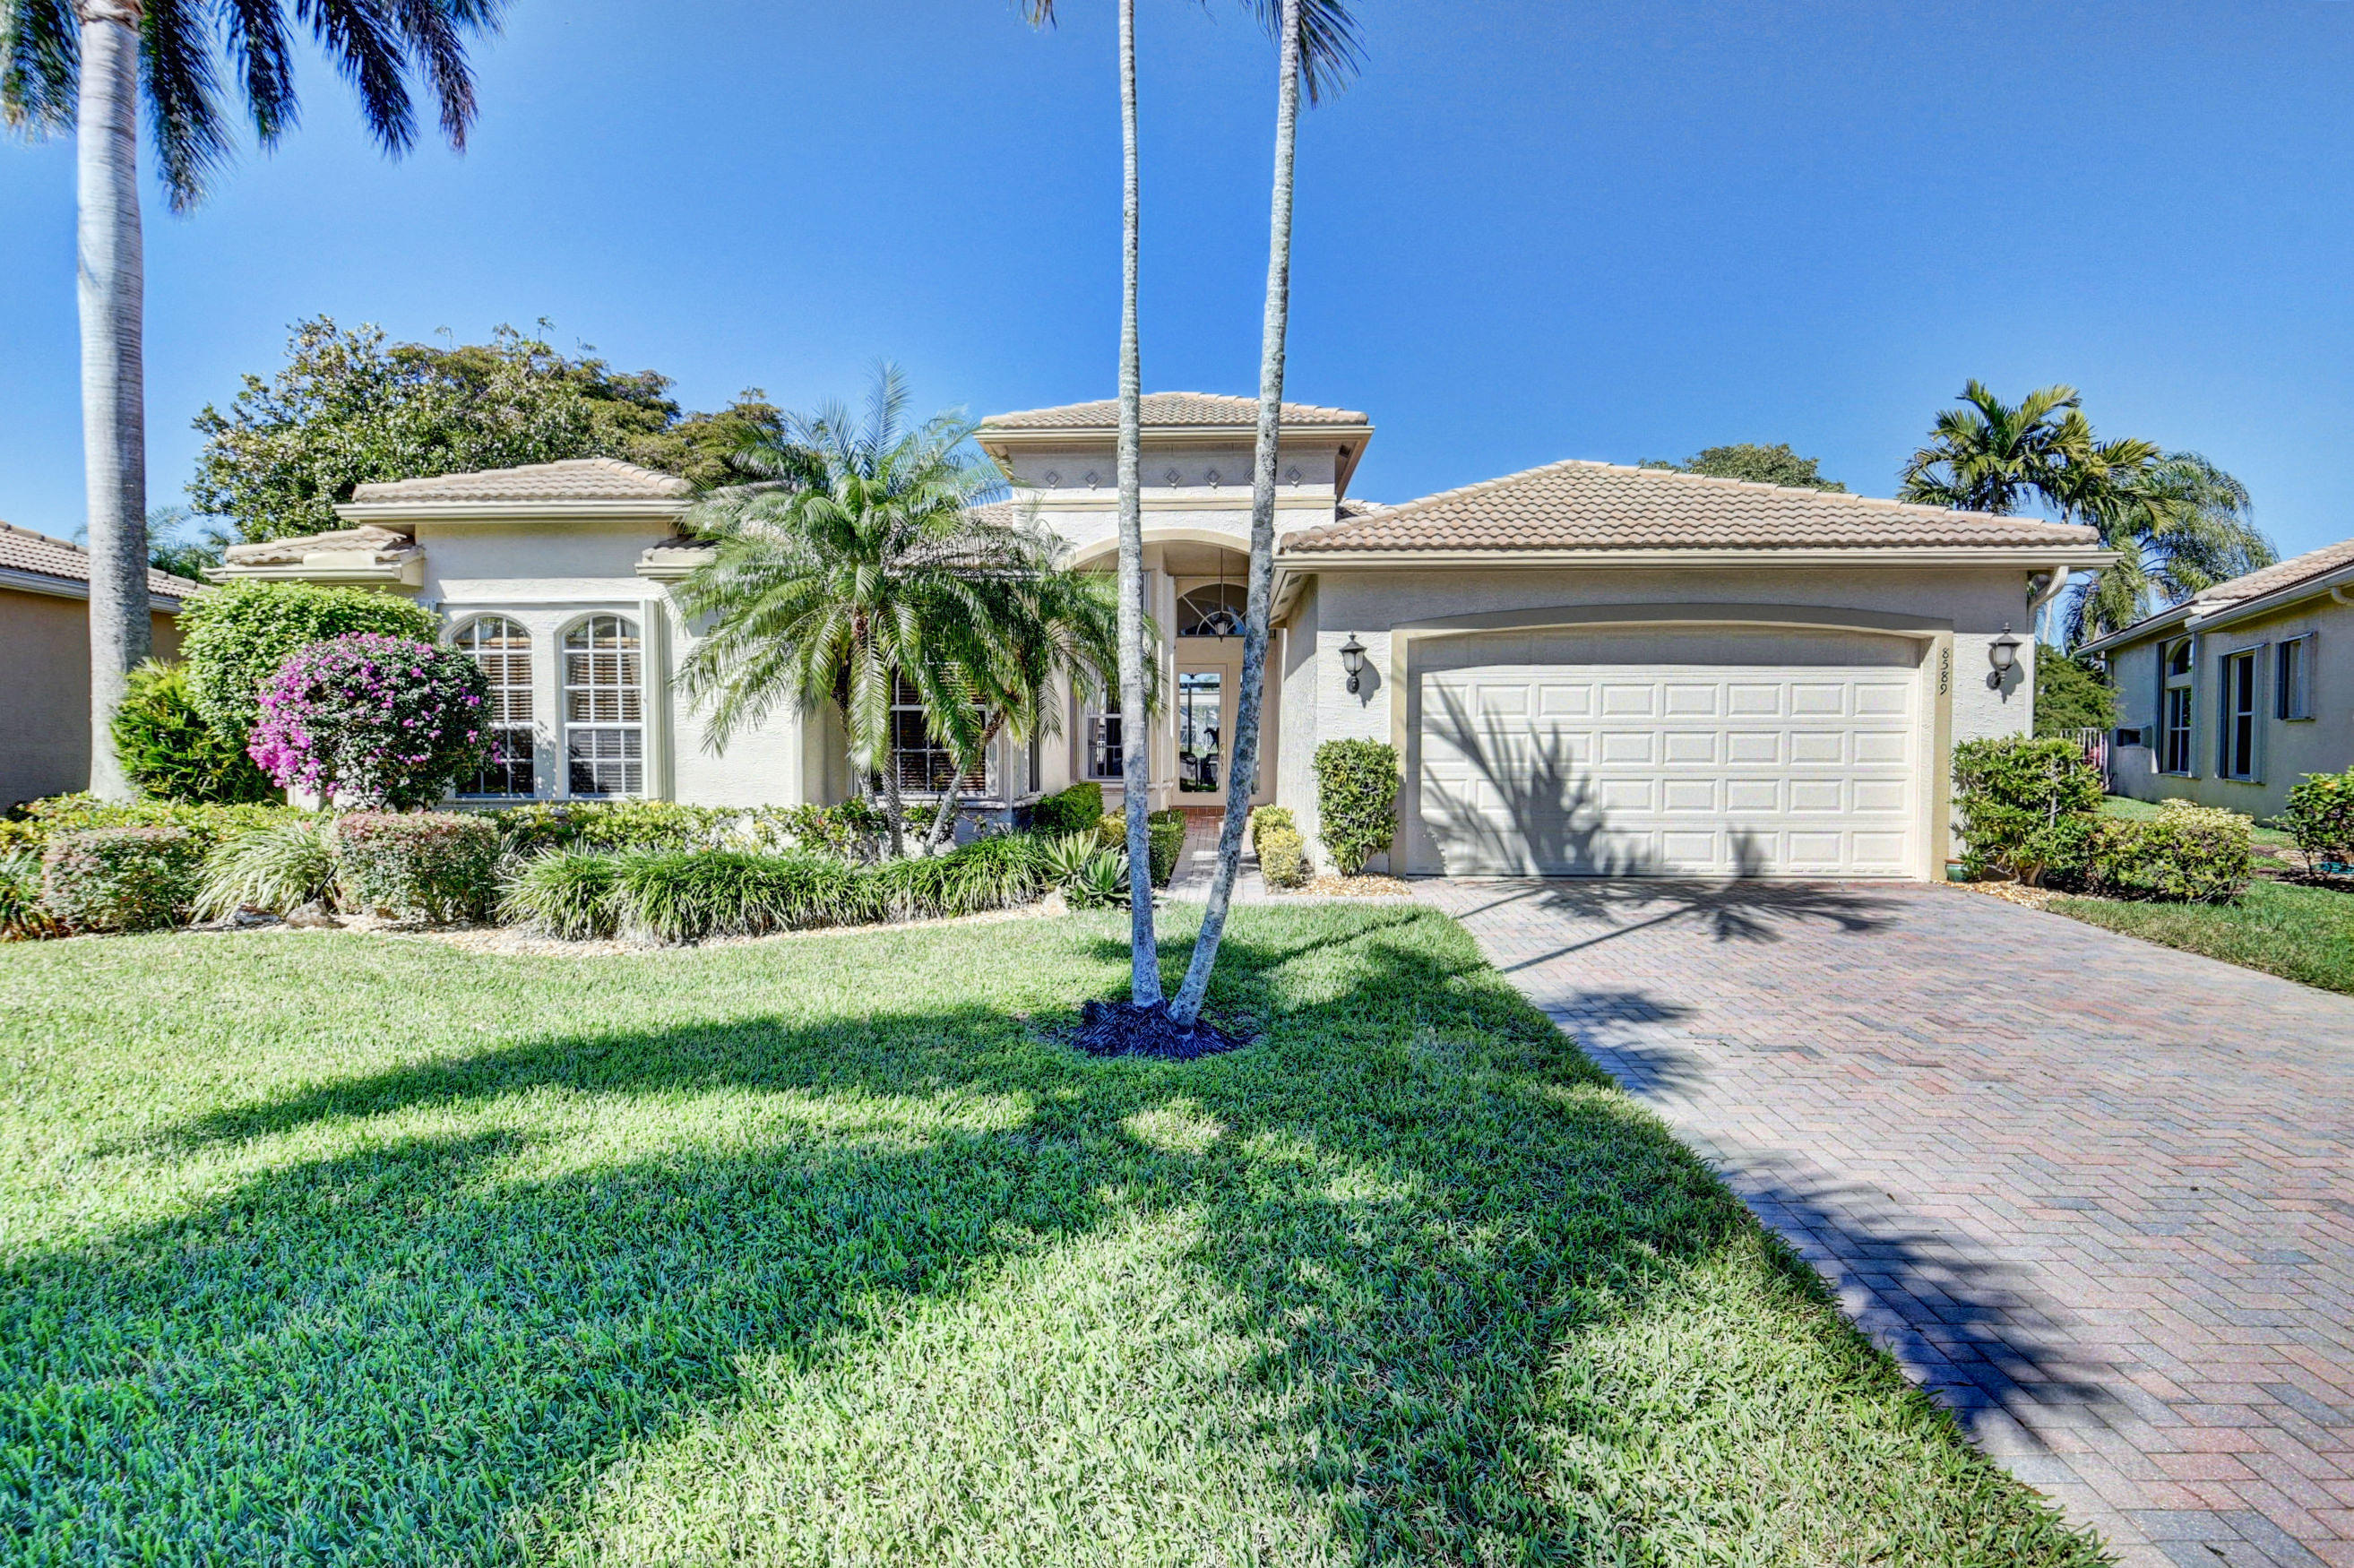 8589 Vintage Reserve Terrace, Lake Worth, Florida 33467, 4 Bedrooms Bedrooms, ,2.1 BathroomsBathrooms,Single Family,For Sale,VALENCIA SHORES,Vintage Reserve,RX-10502645